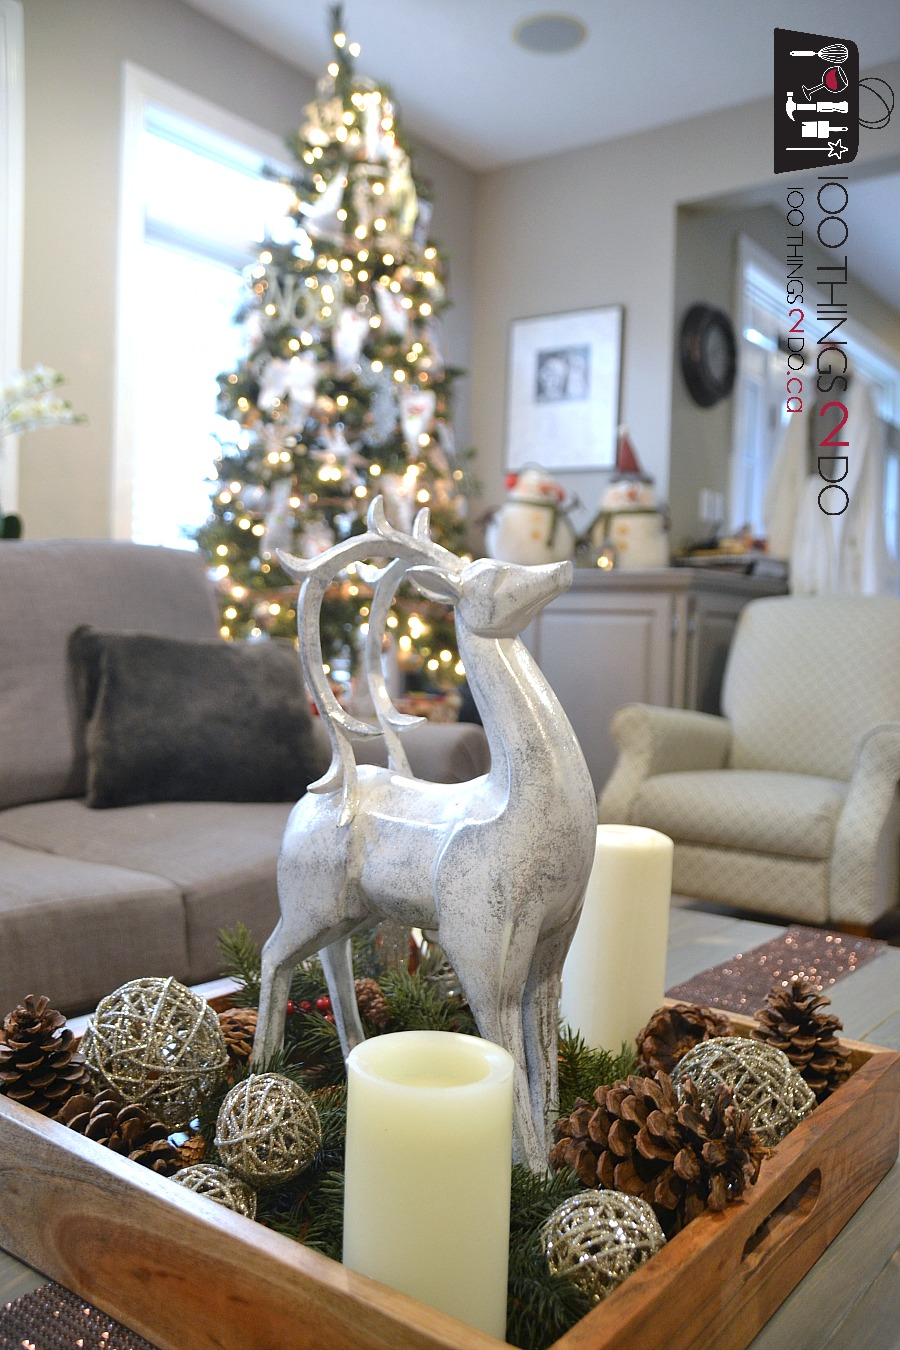 Holiday Home tour, Christmas home tour